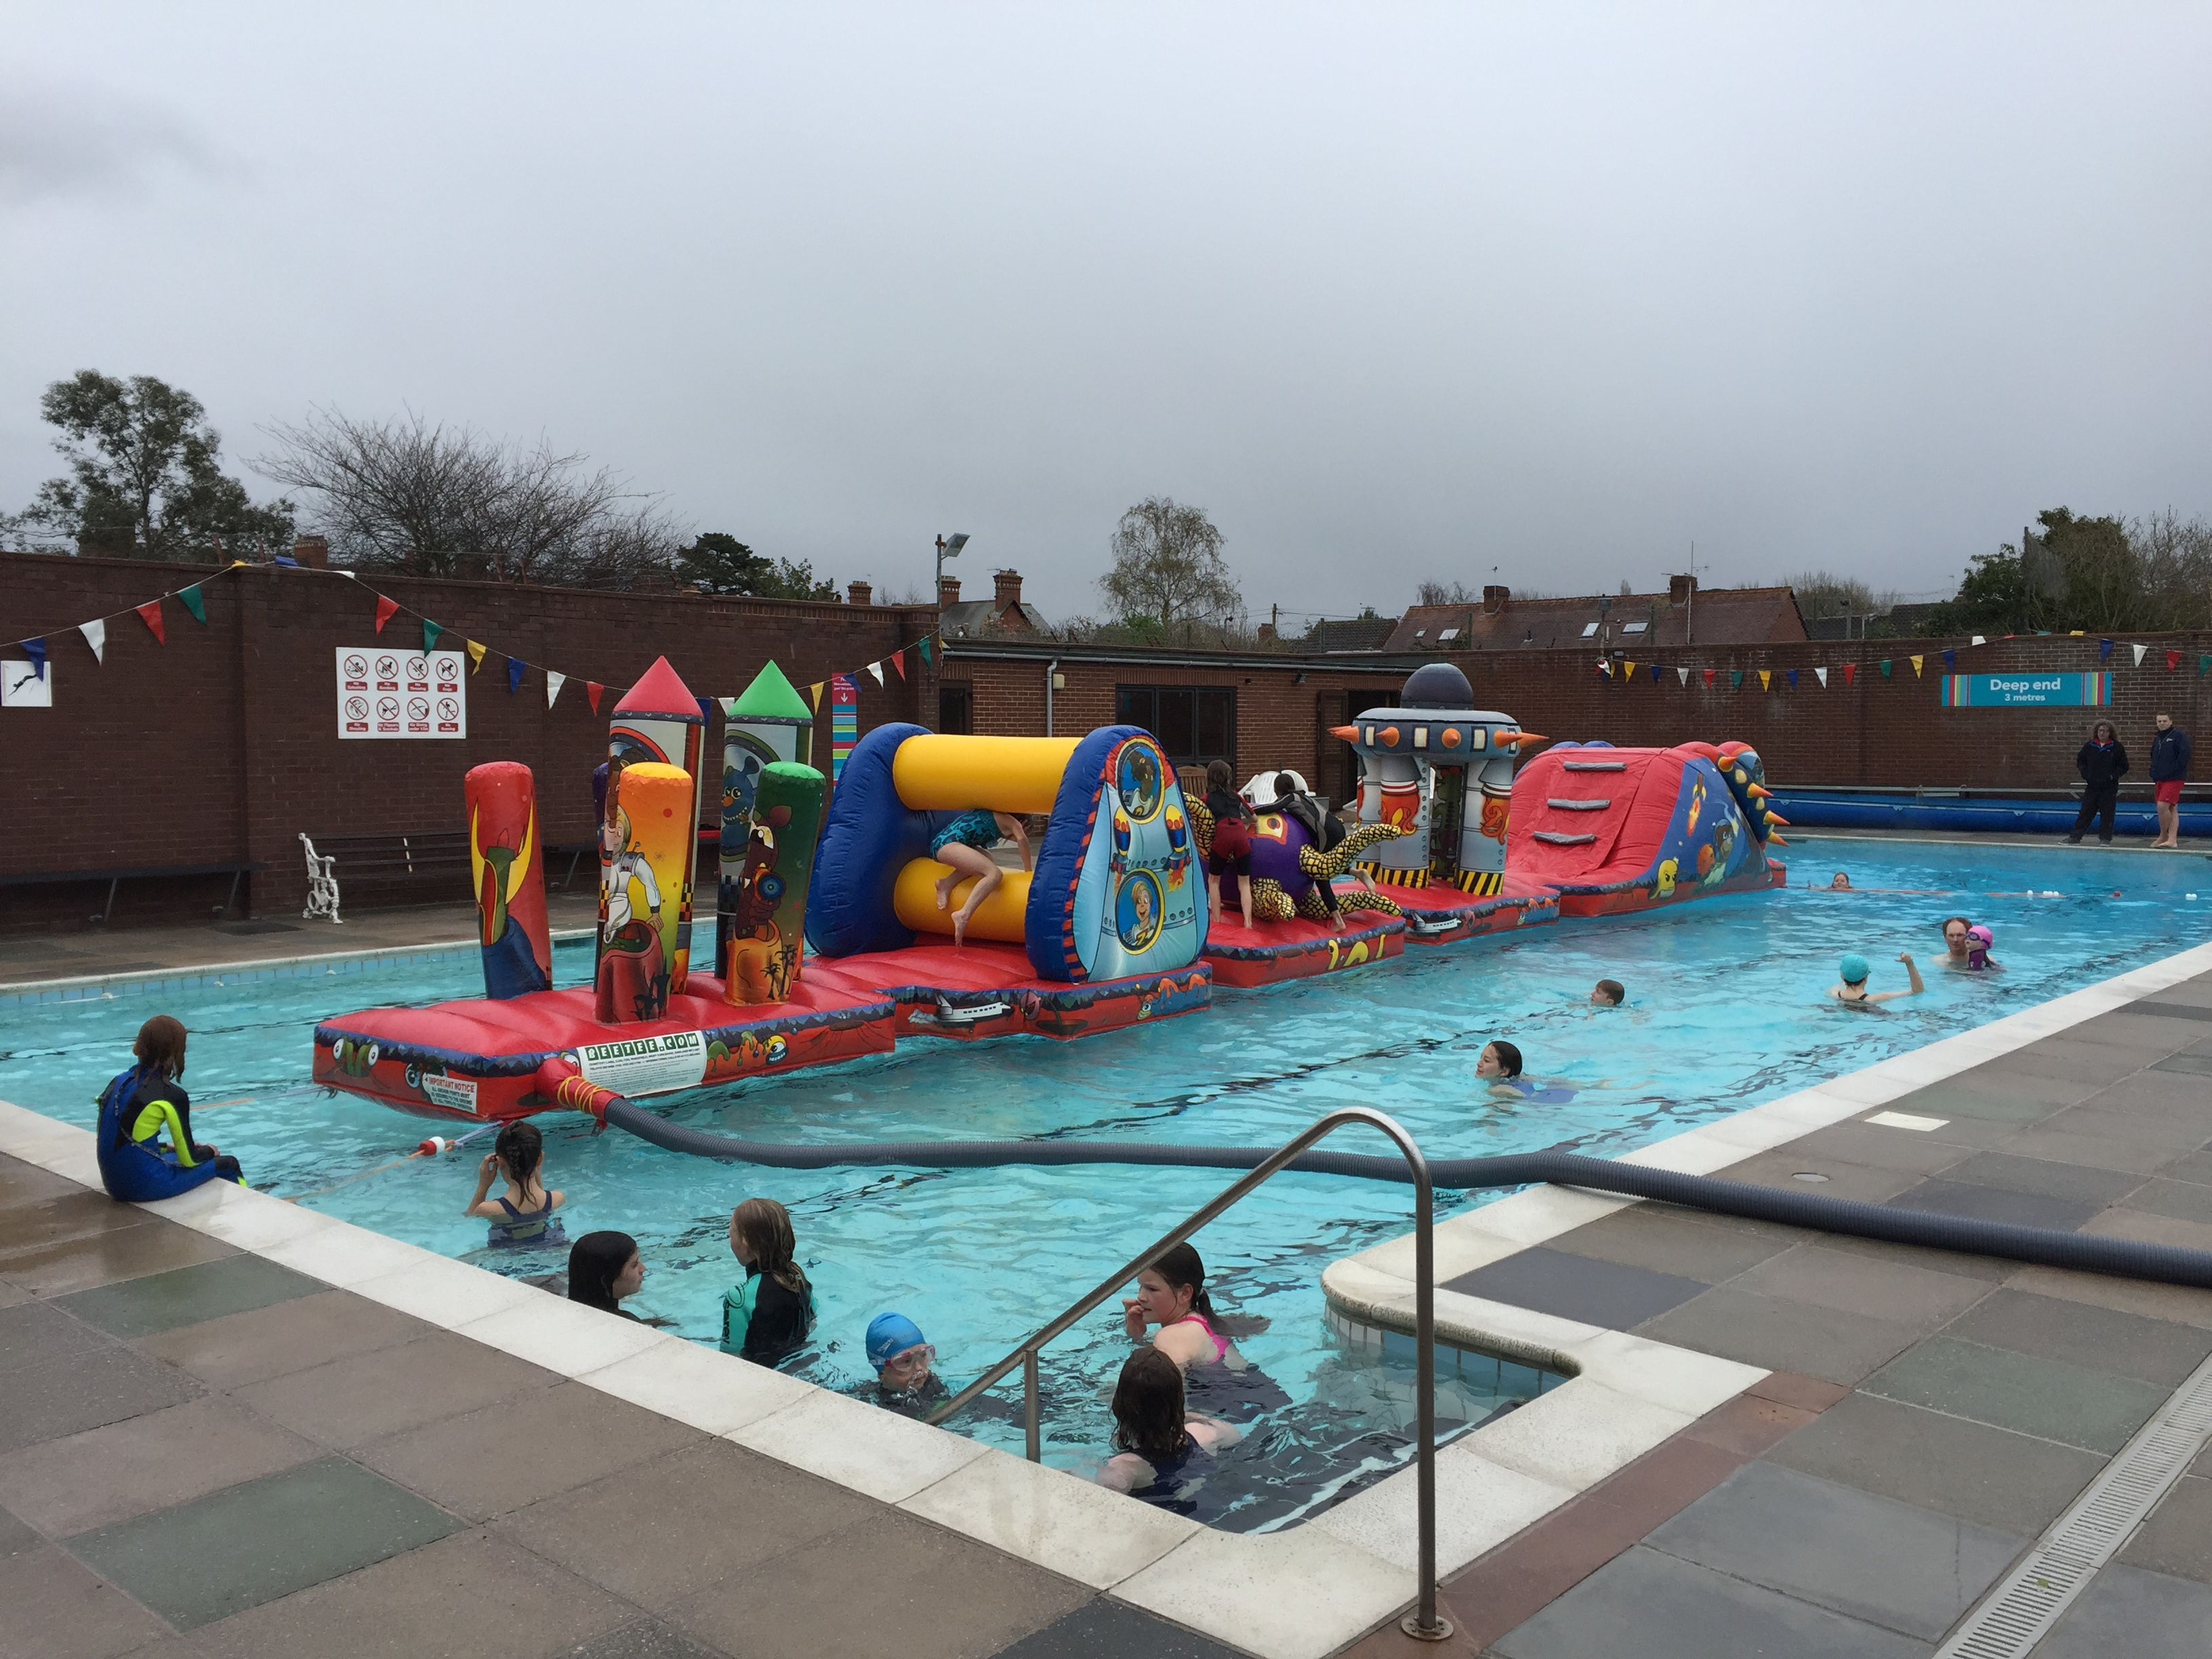 Swimmers Support Opening Weekend Topsham Outdoor Swimming Pool